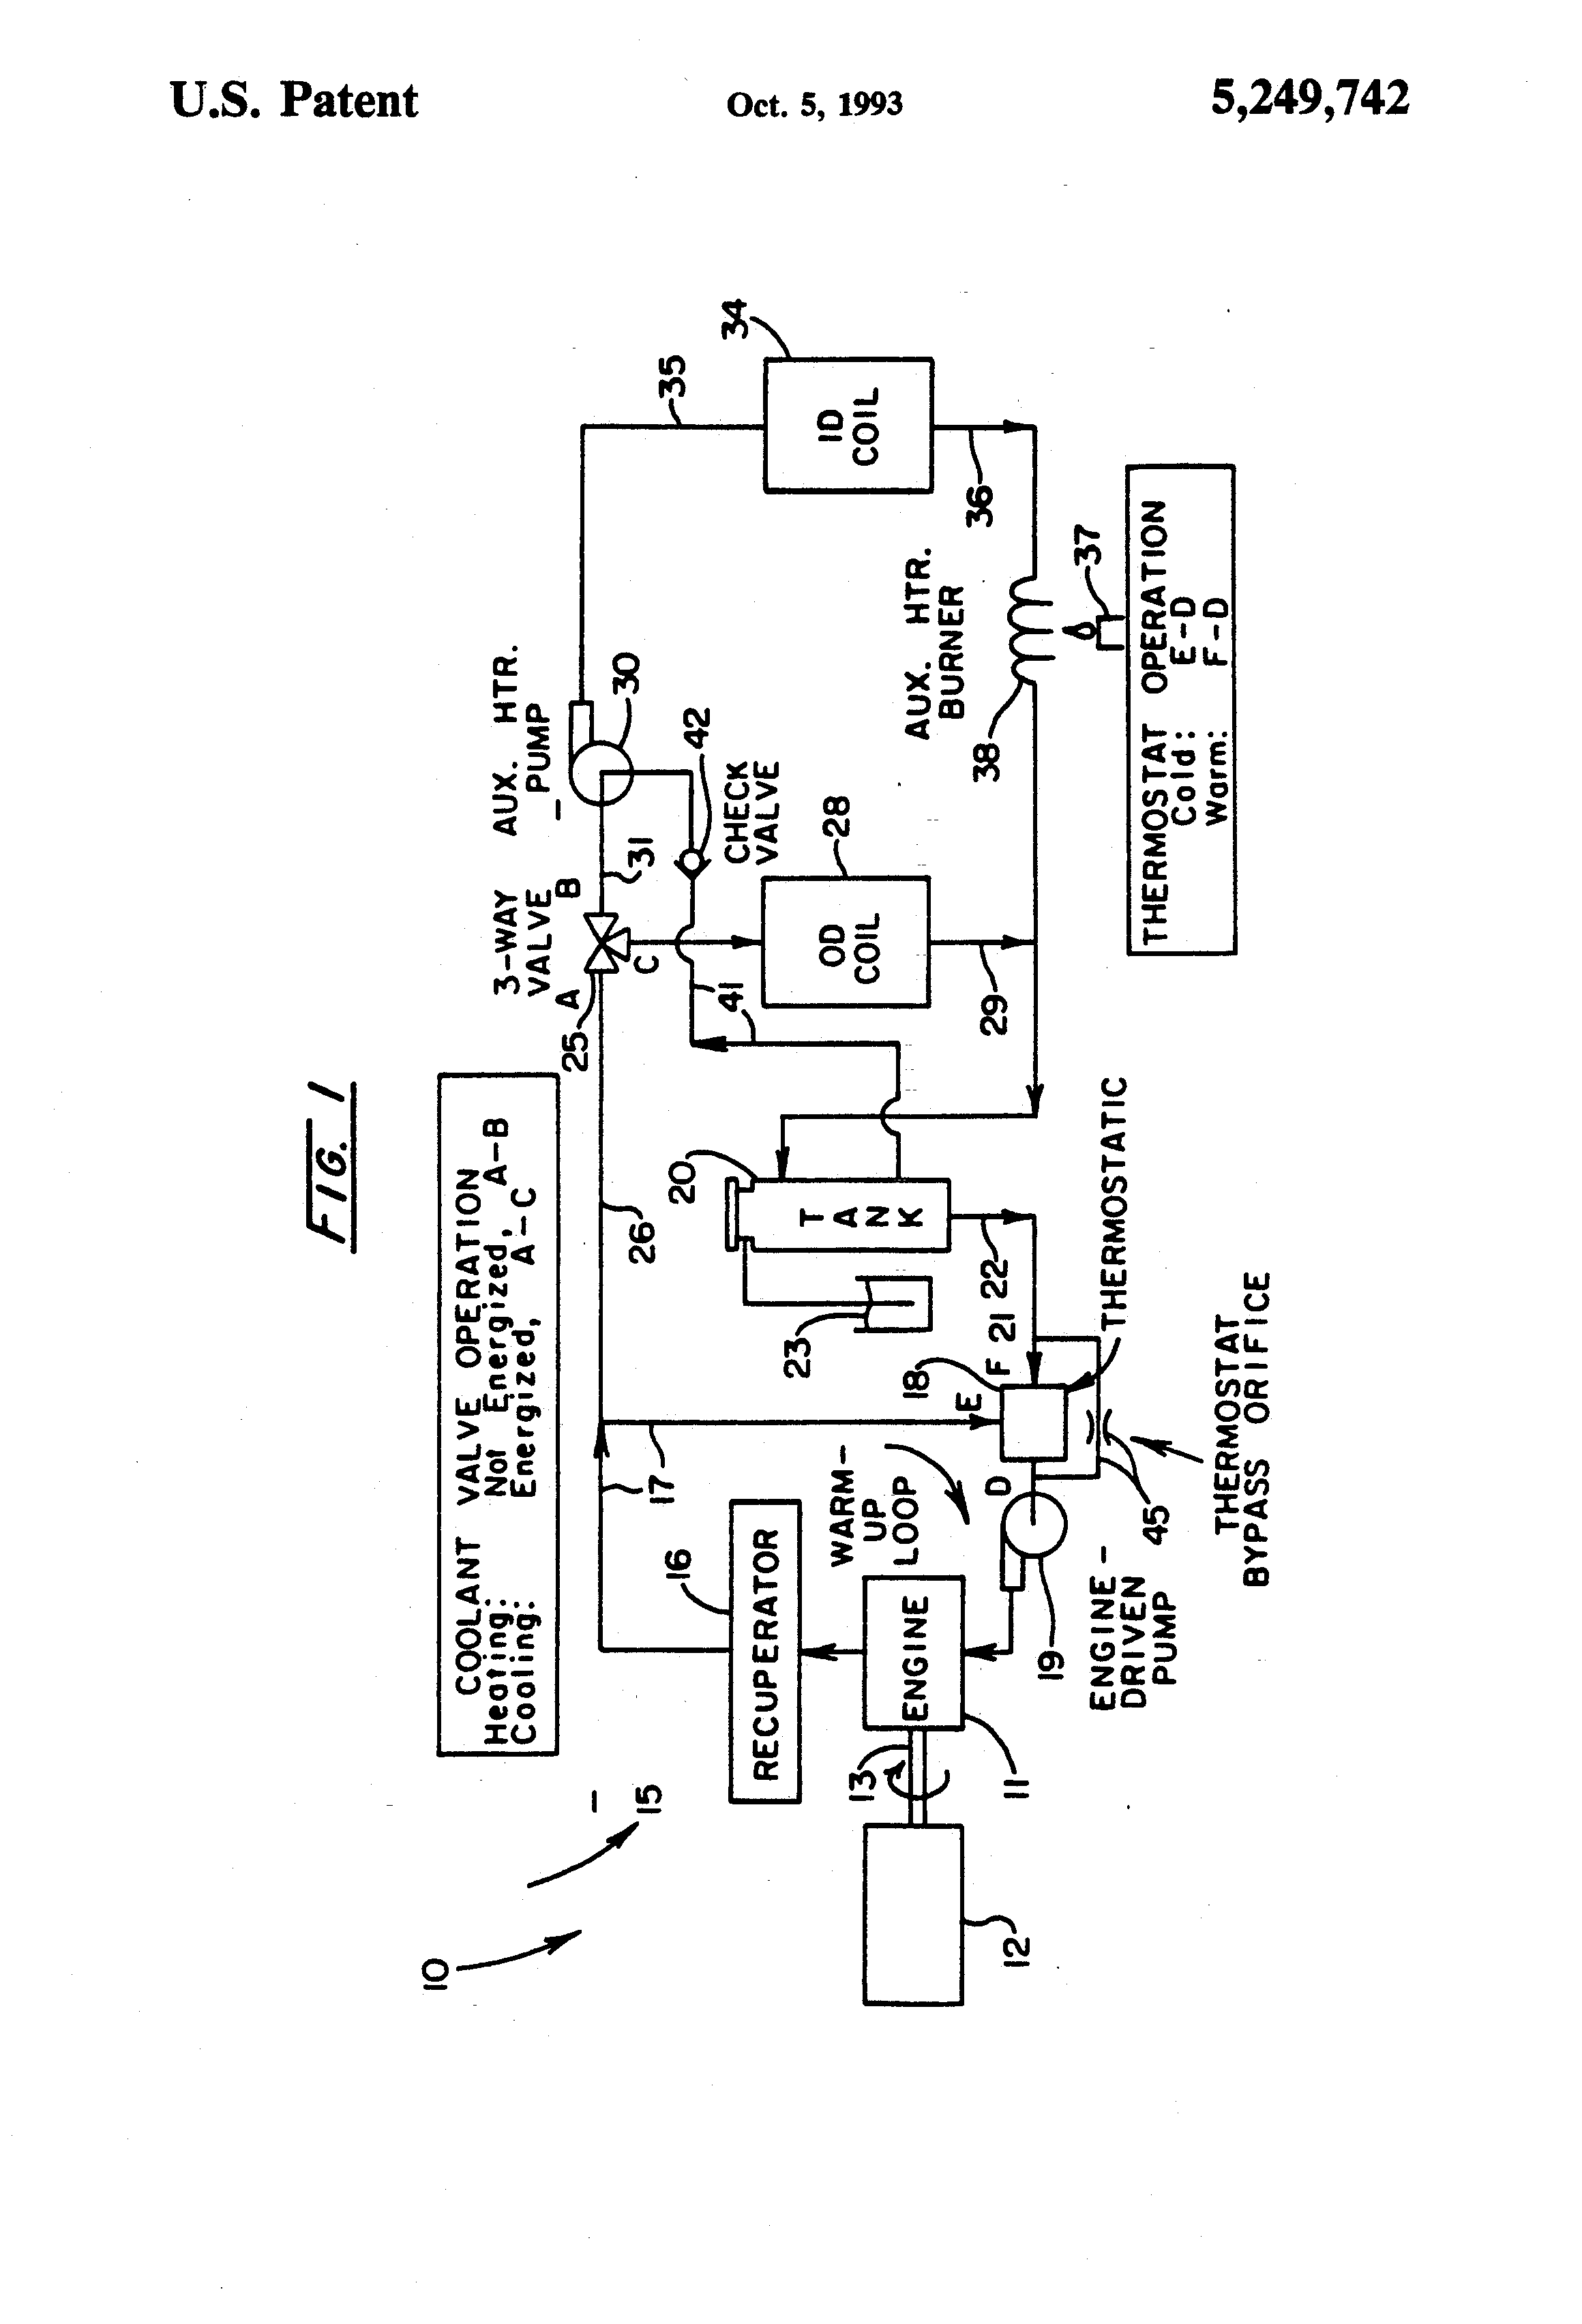 Us5249742 Coolant Circulation System For Engine Diagram Heat Pump Patent Drawing